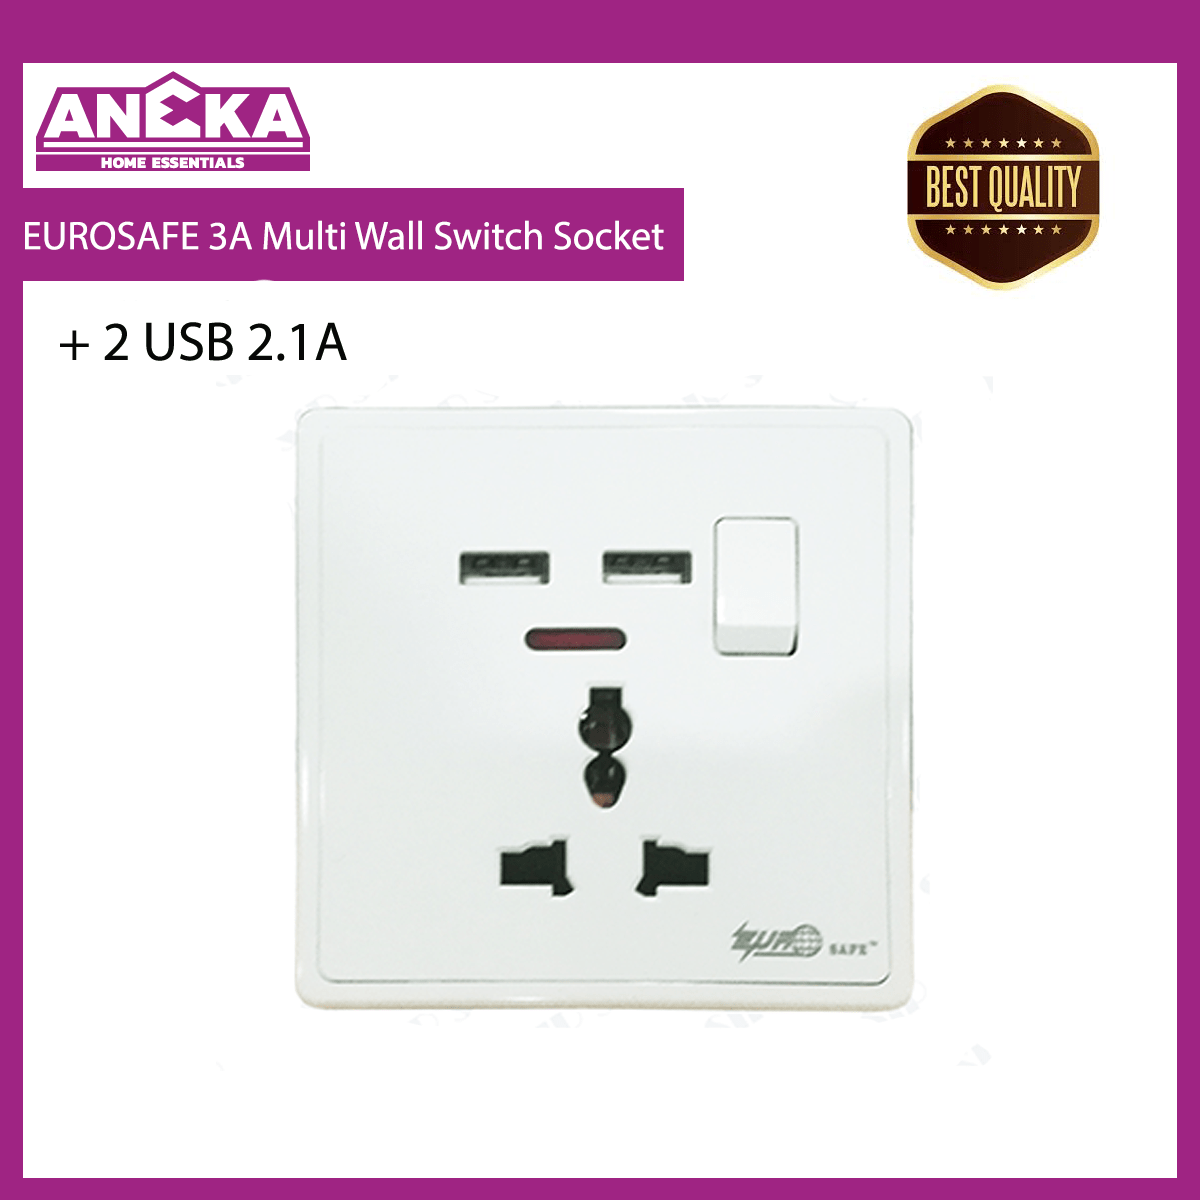 EUROSAFE 13A Multi Wall Switch Socket c/w 2 USB